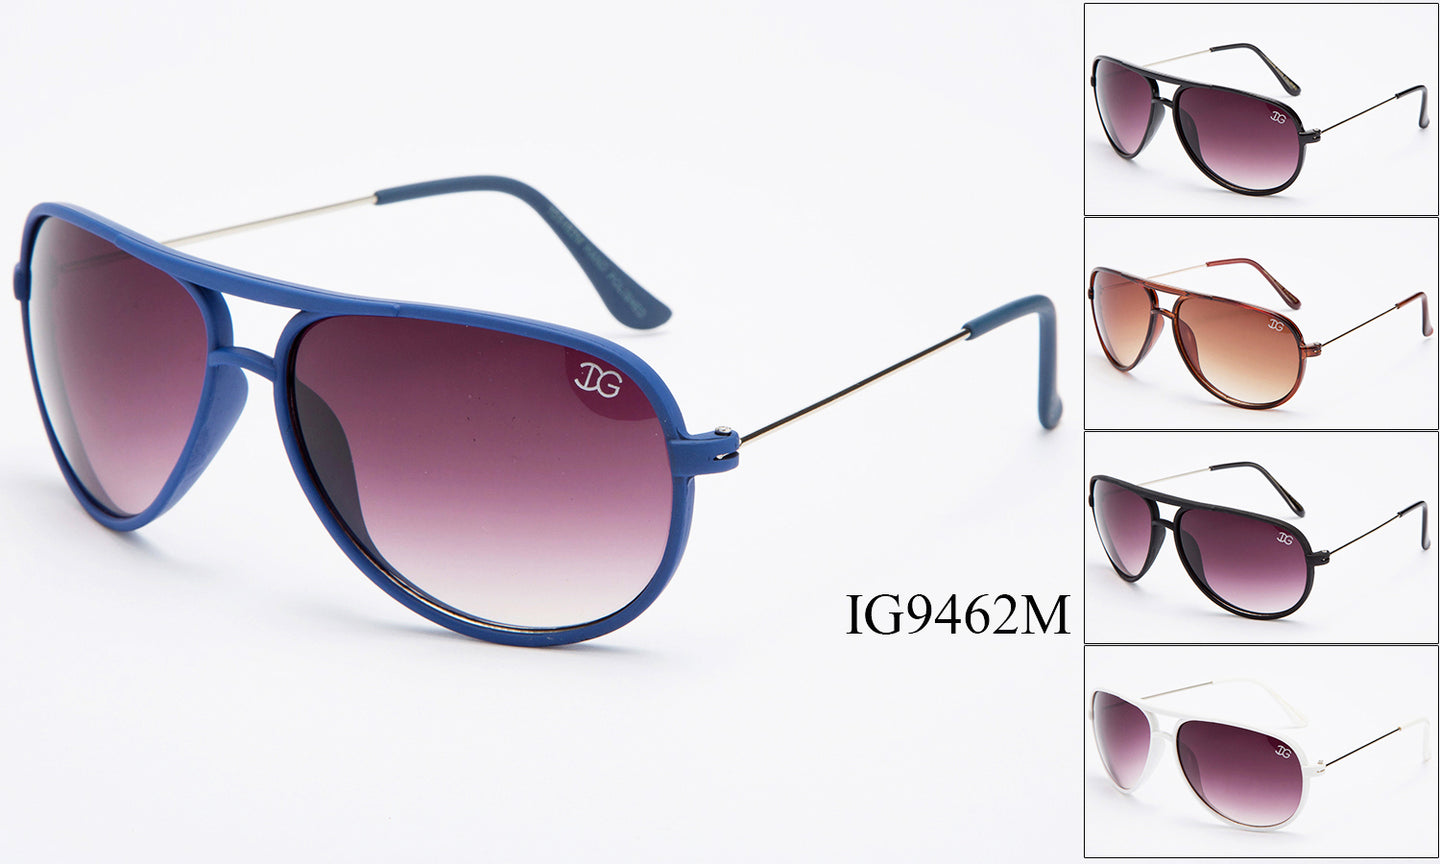 Unisex Wholesale Trendy Fashionable Aviator Plastic Sunglasses 1 Dozen IG9462-M - BuyWholesaleSunglasses.com